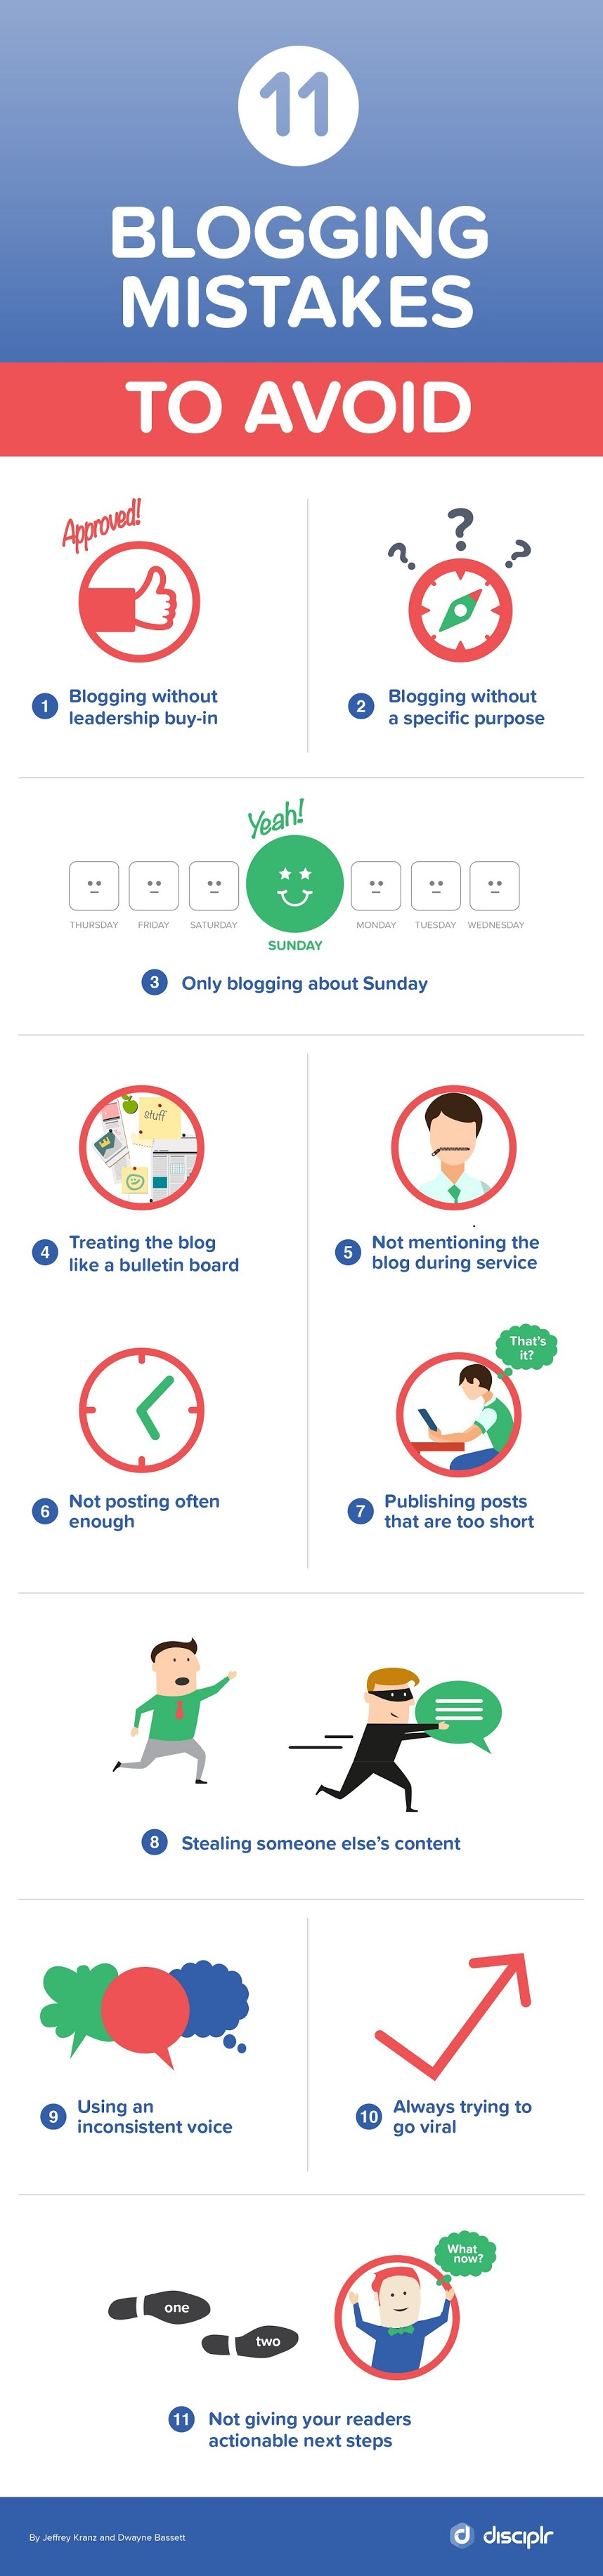 11 common blogging mistakes to avoid (and why) - infographic